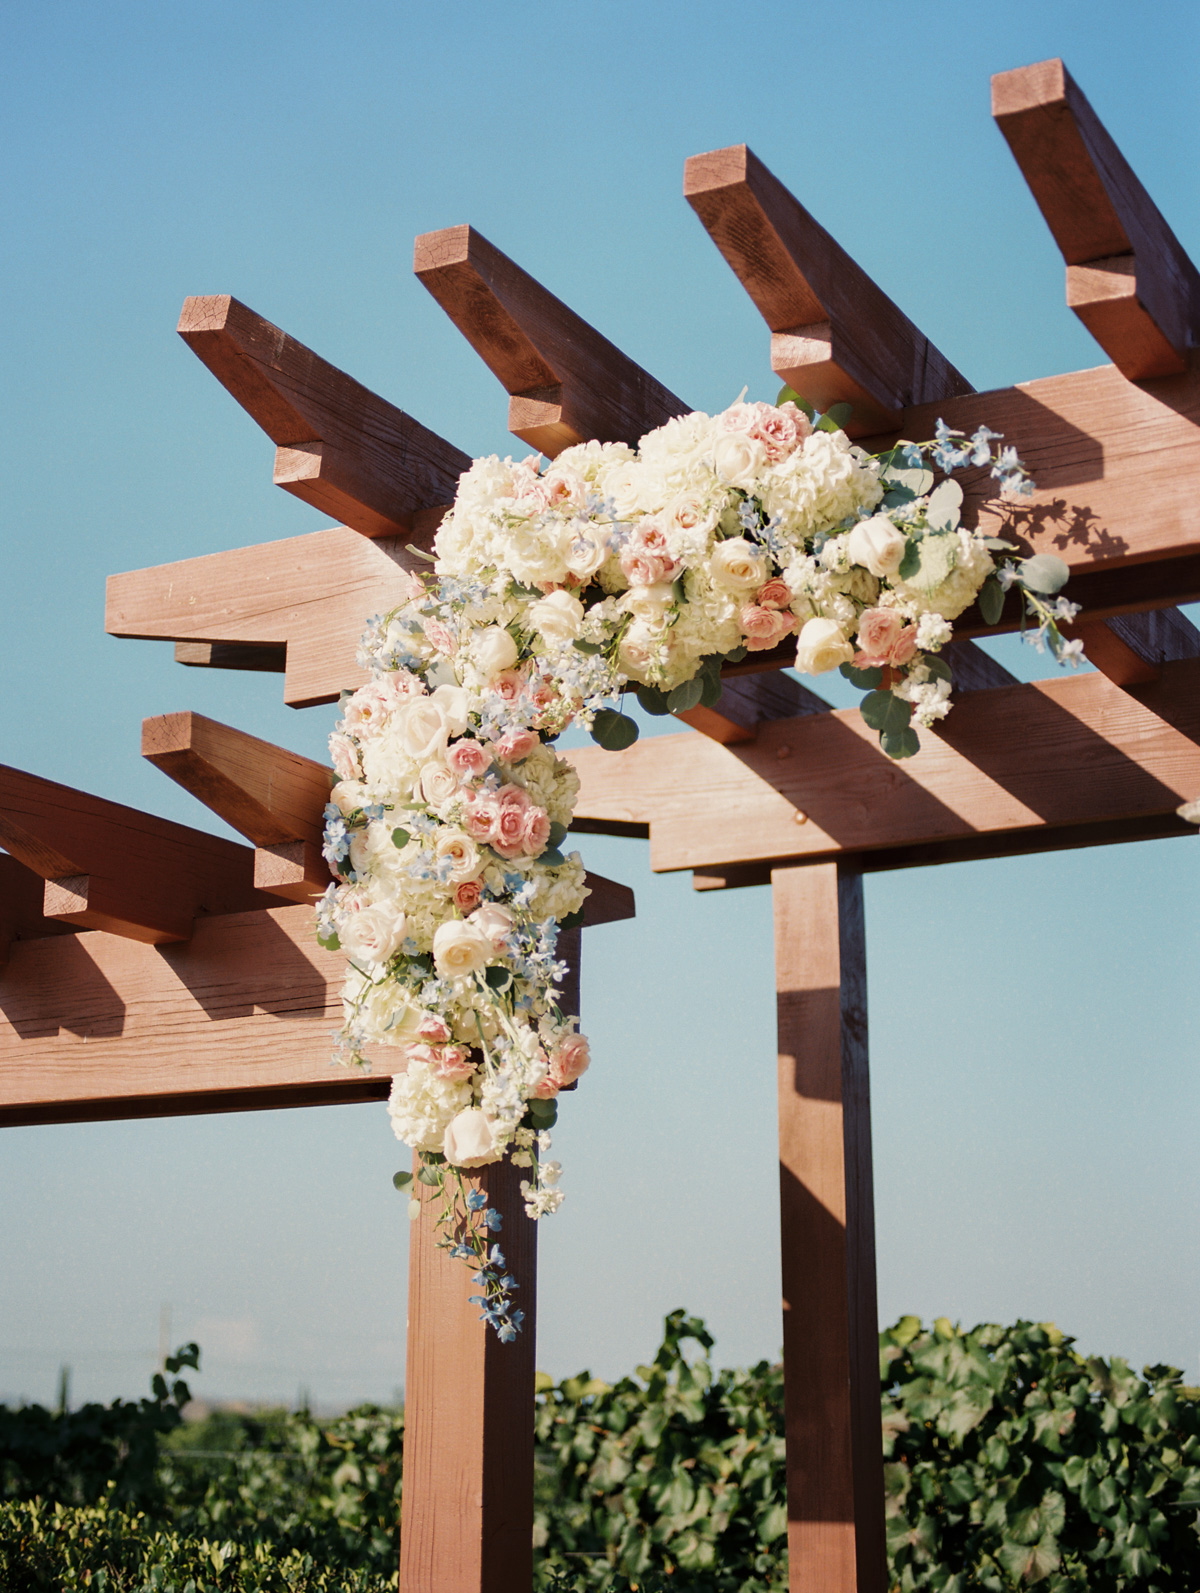 Floral arch by Soiree Design & Events |Harrison & Jocelyne's gorgeous Temecula wedding at Wiens Family Cellars captured by Betsy & John | Temecula Wedding Photographers